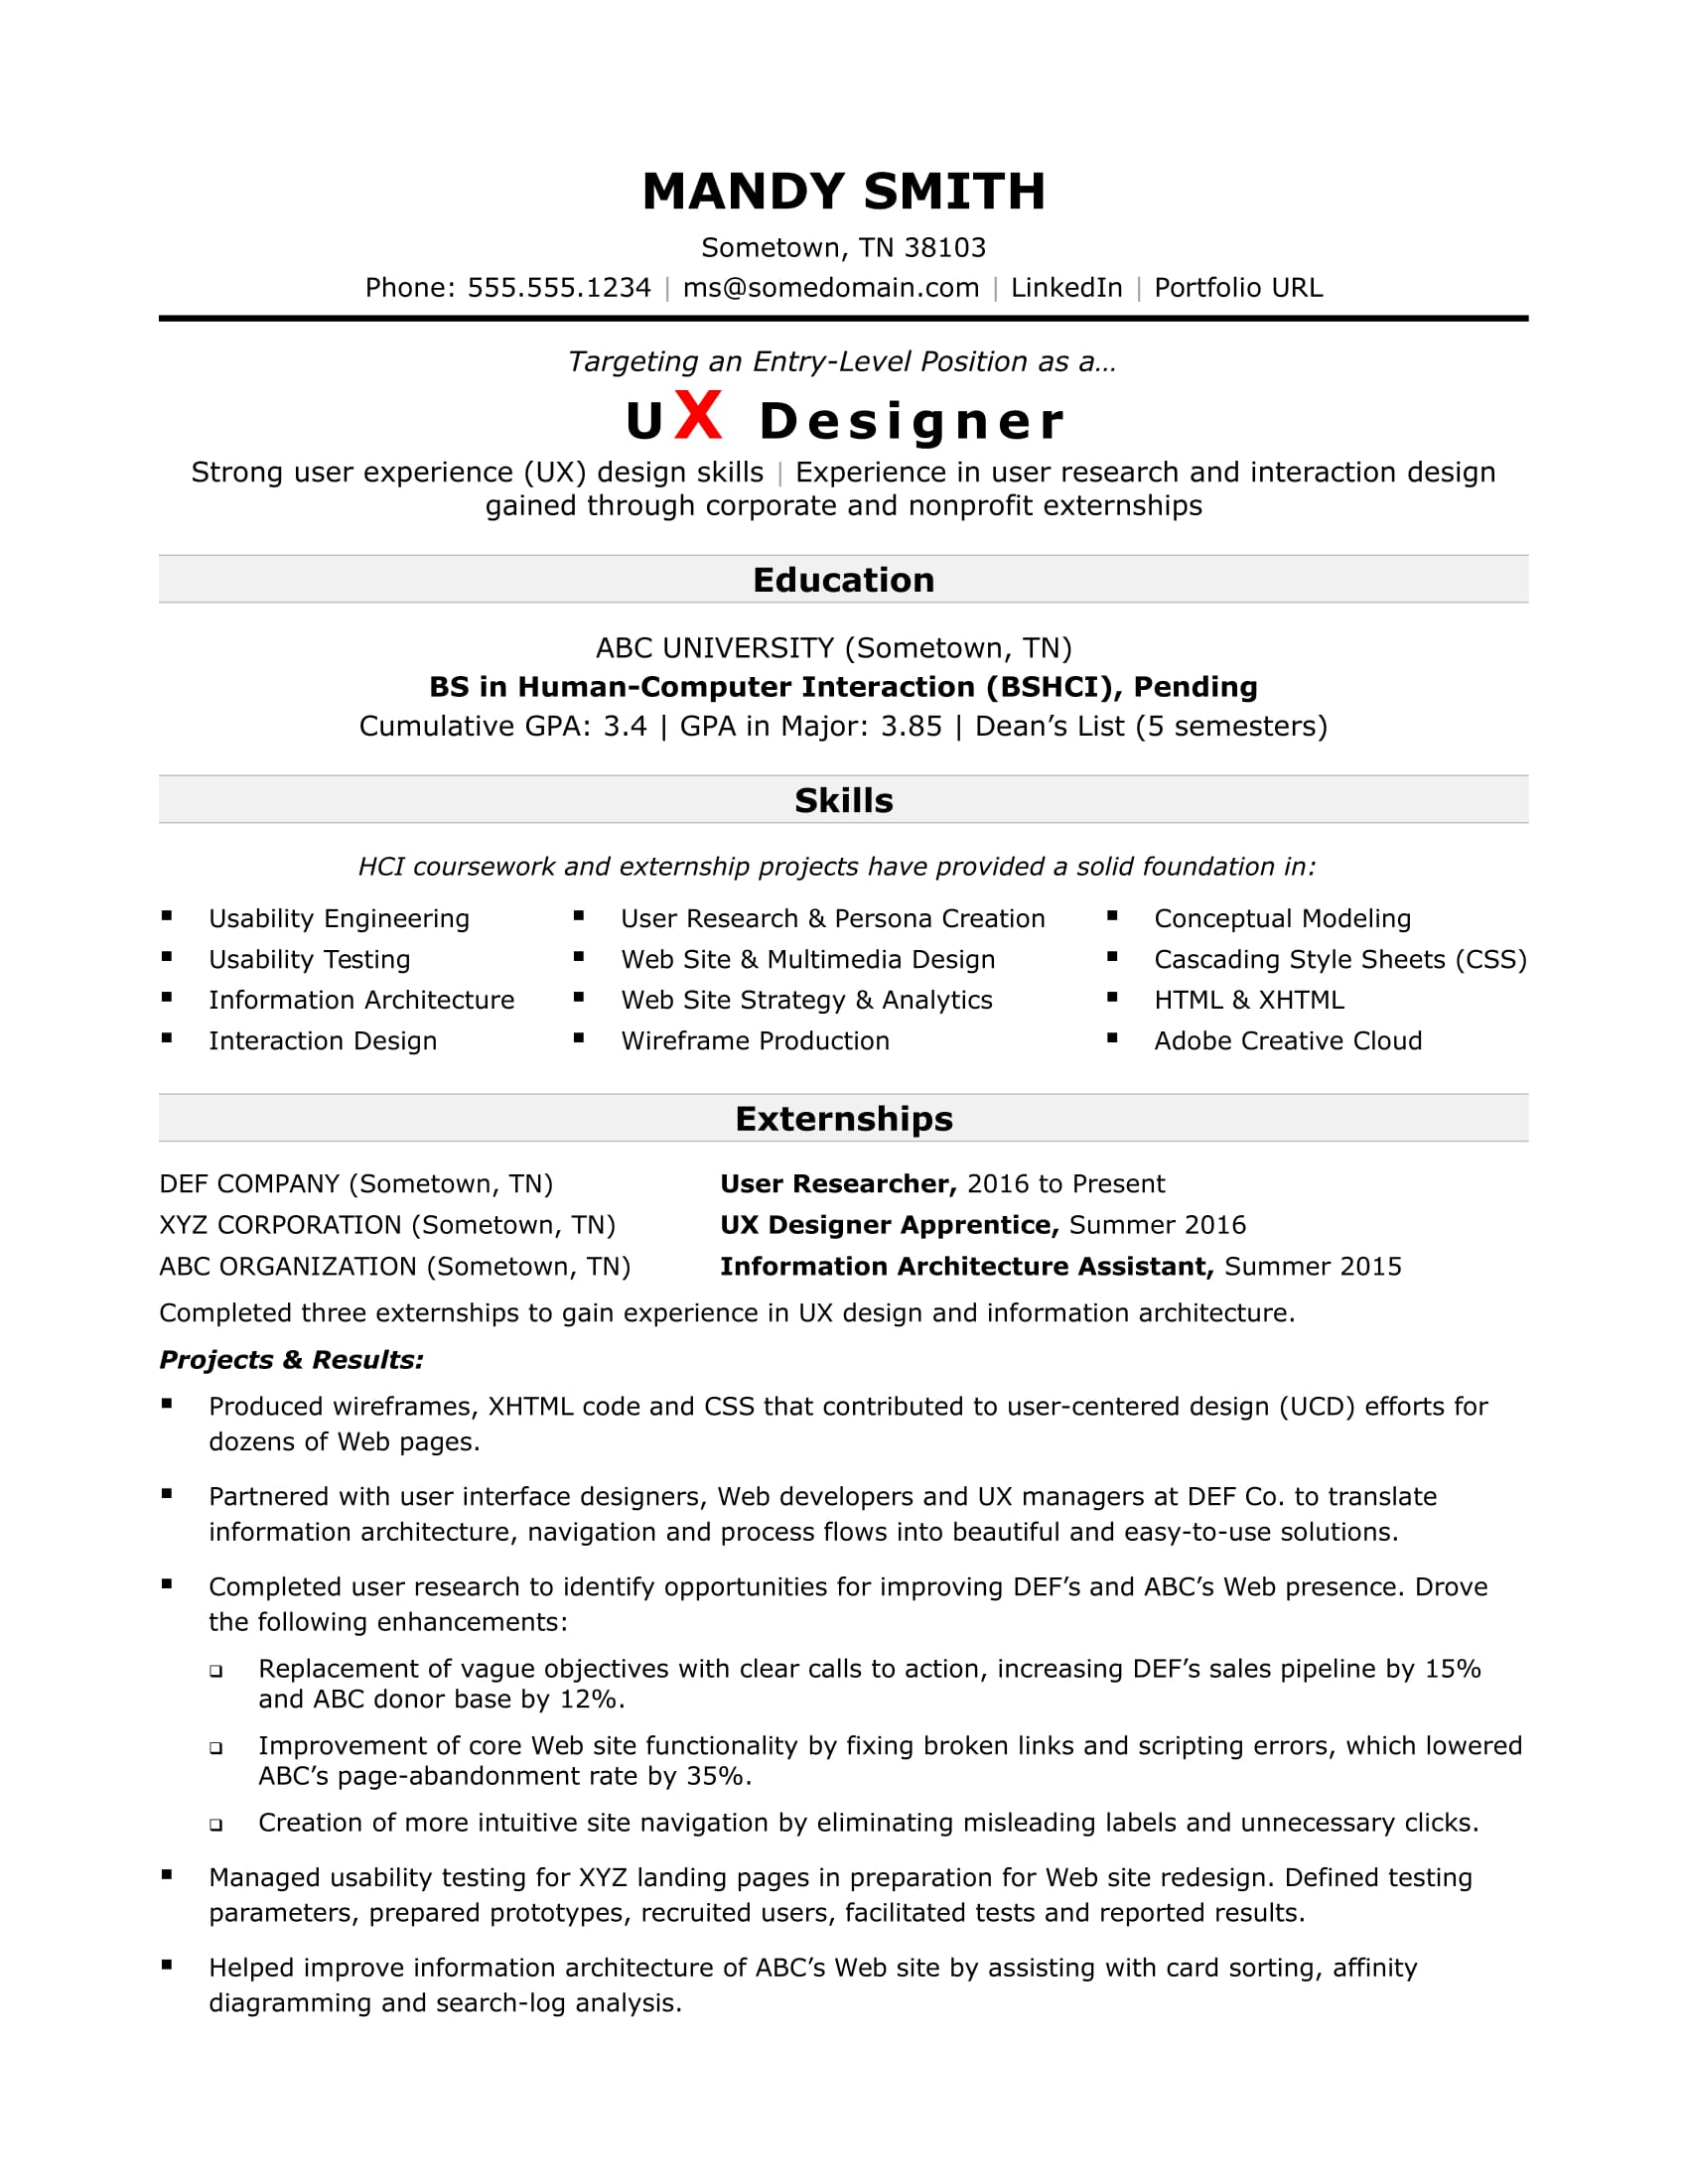 Sample Resume for an Entry-Level UX Designer | Monster com